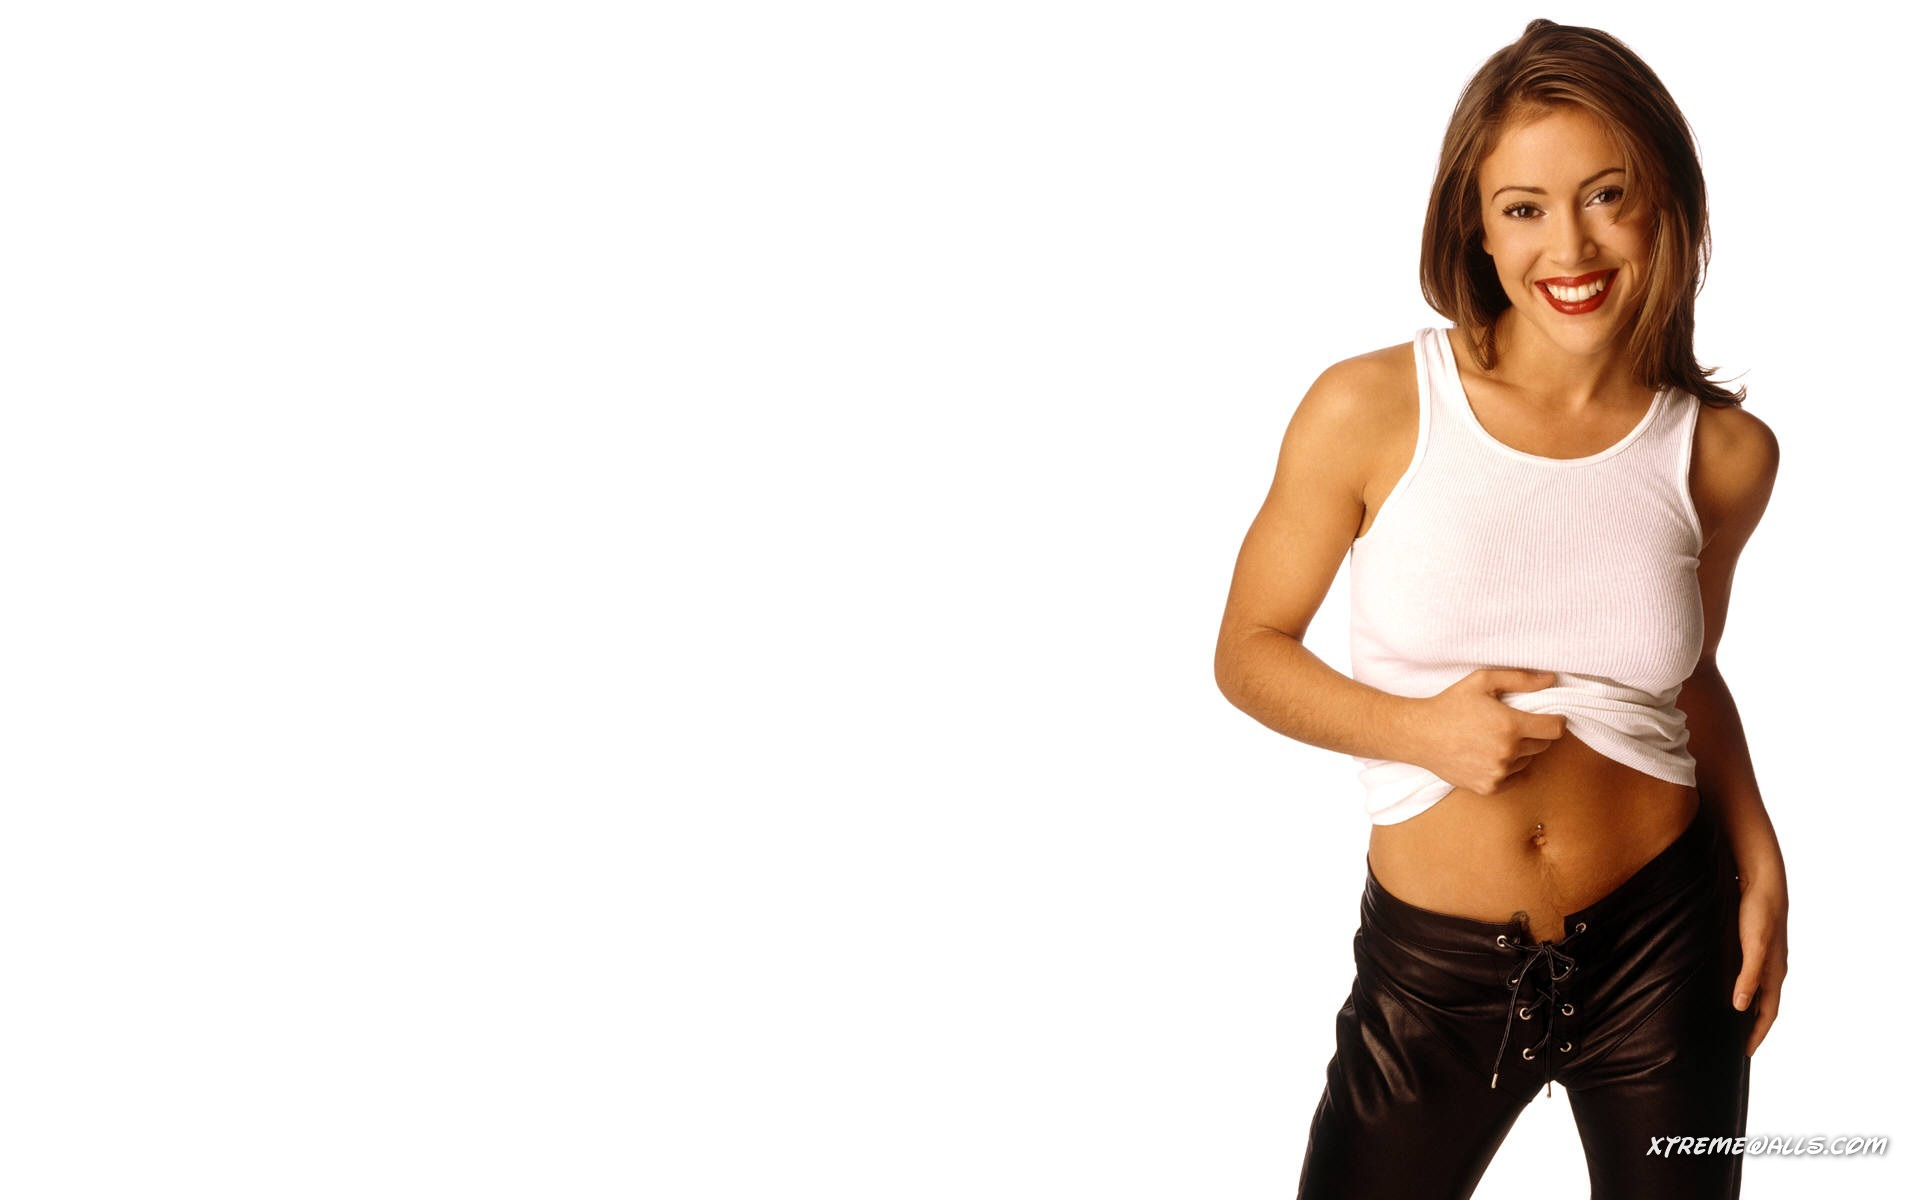 Body Body Full Body Alyssa Milano , HD Wallpaper & Backgrounds